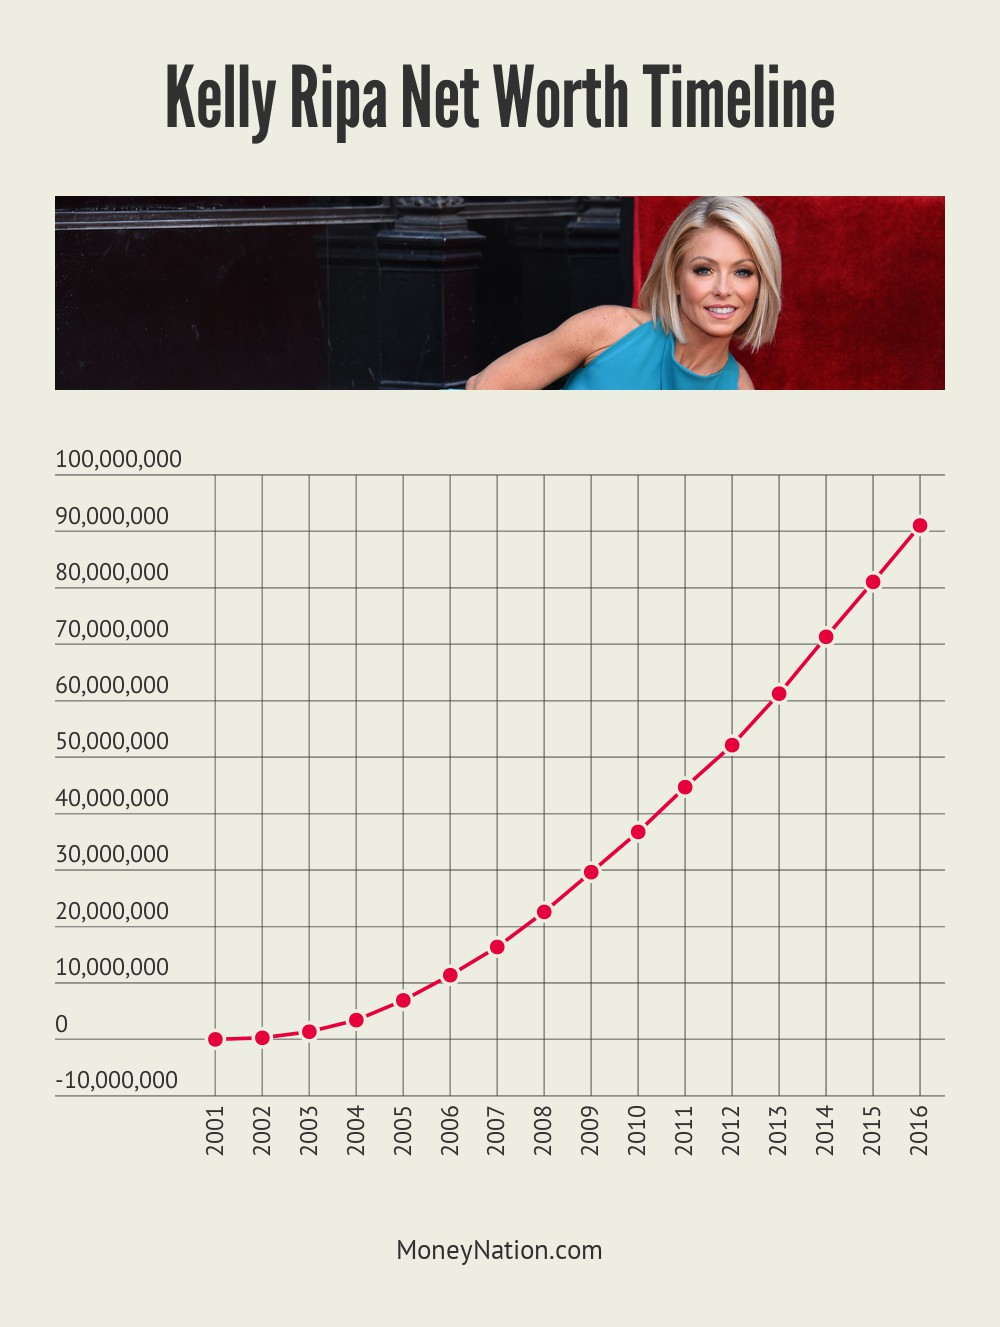 Kelly Ripa Net Worth Timeline